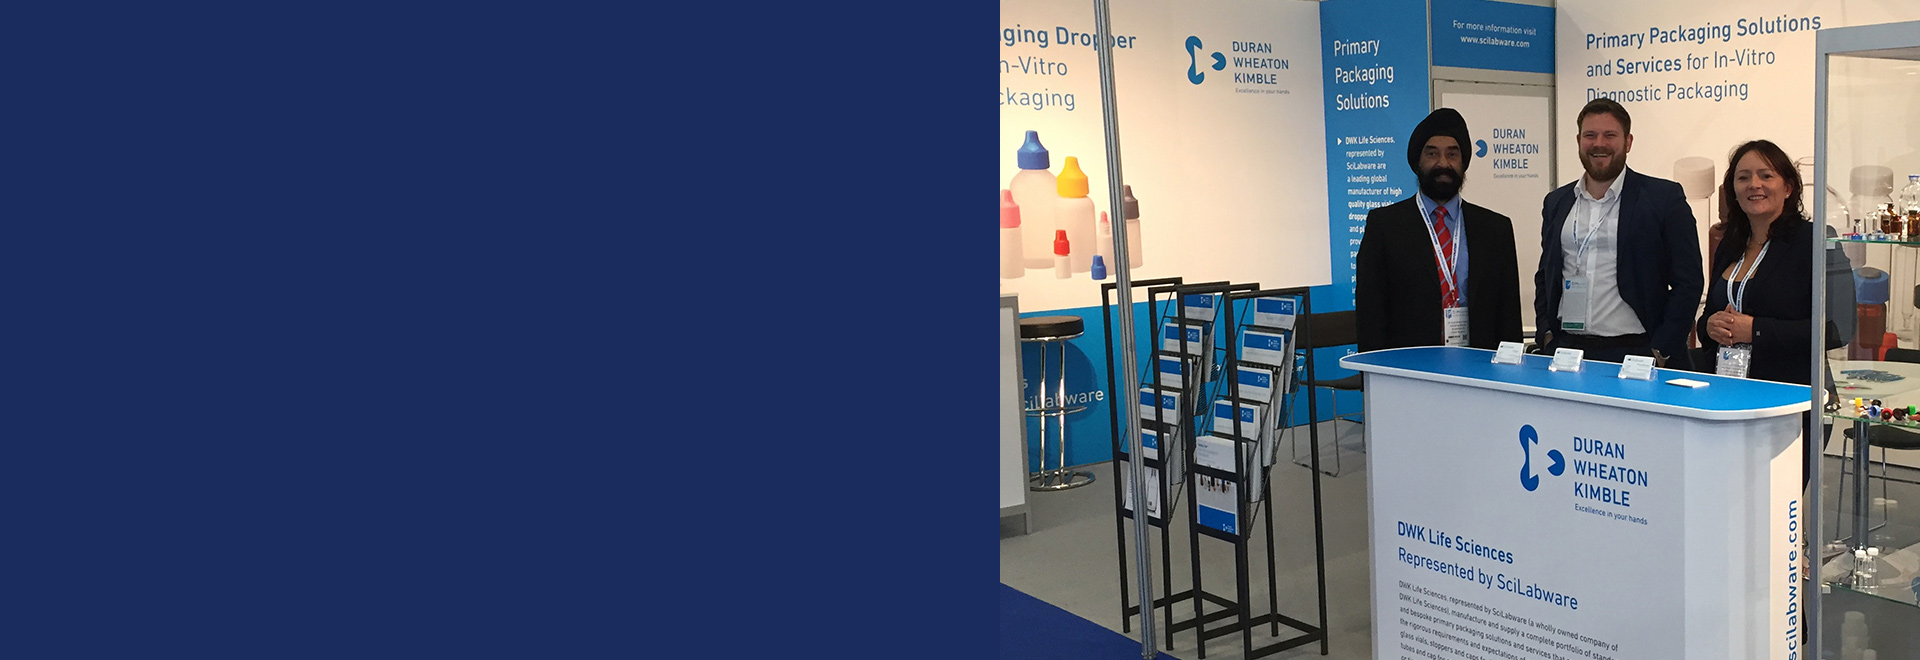 DWK Life Sciences present WHEATON<sup>®</sup> primary packaging solutions at CPhI worldwide 2019